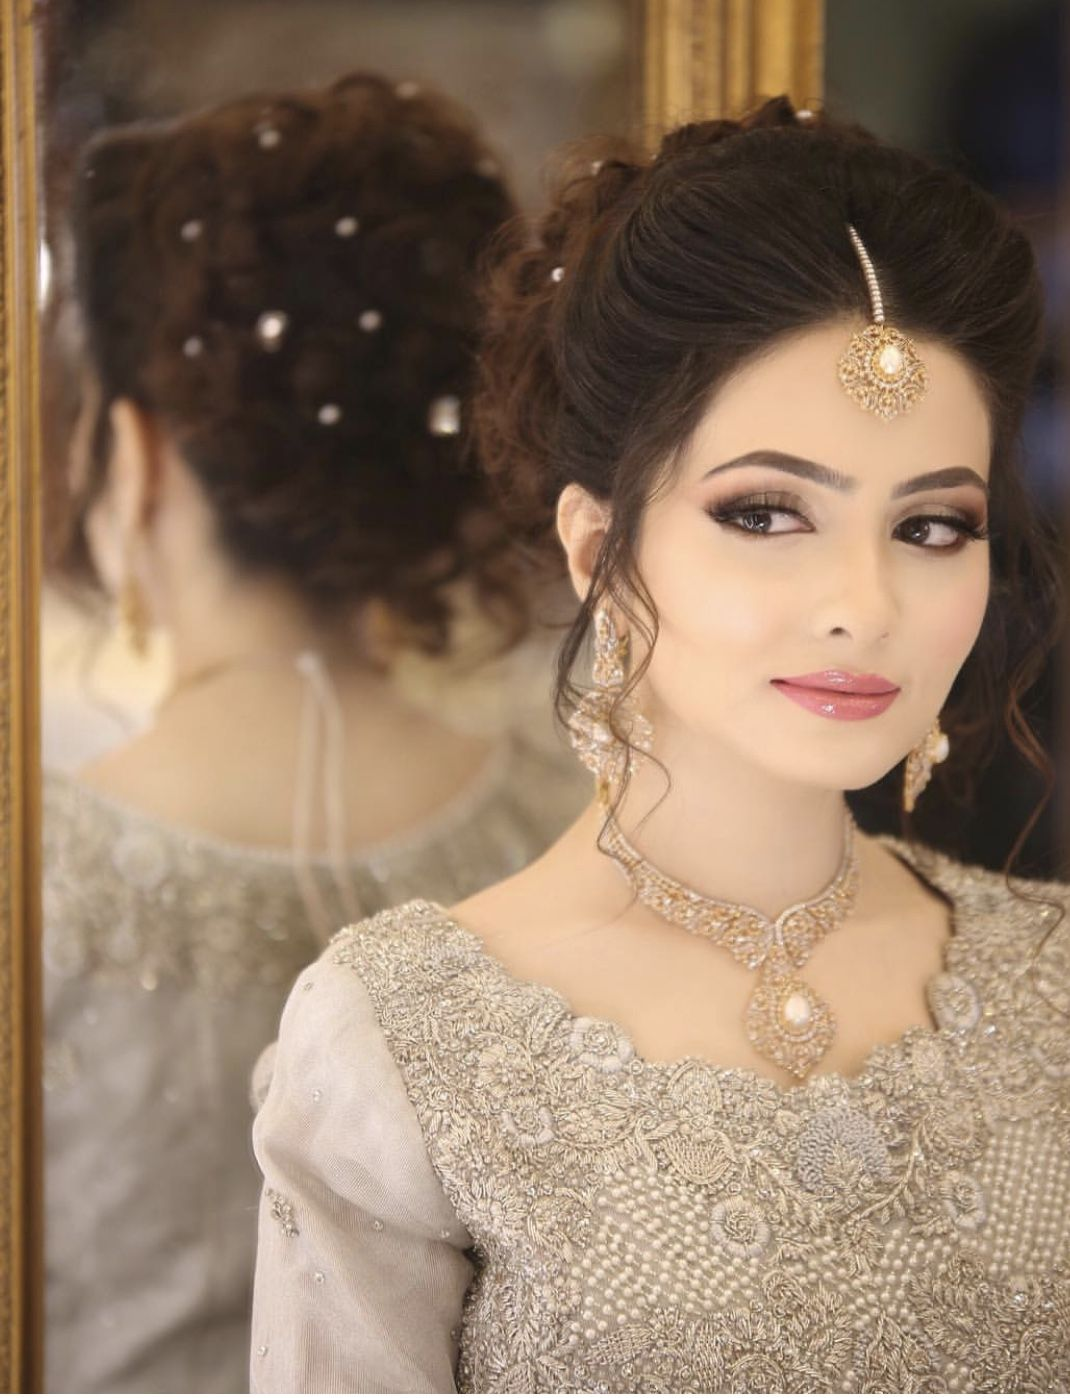 Pin by KS ️ on All AbOuT Weddings | Pakistani bridal makeup, Bridal hairstyle indian wedding ...